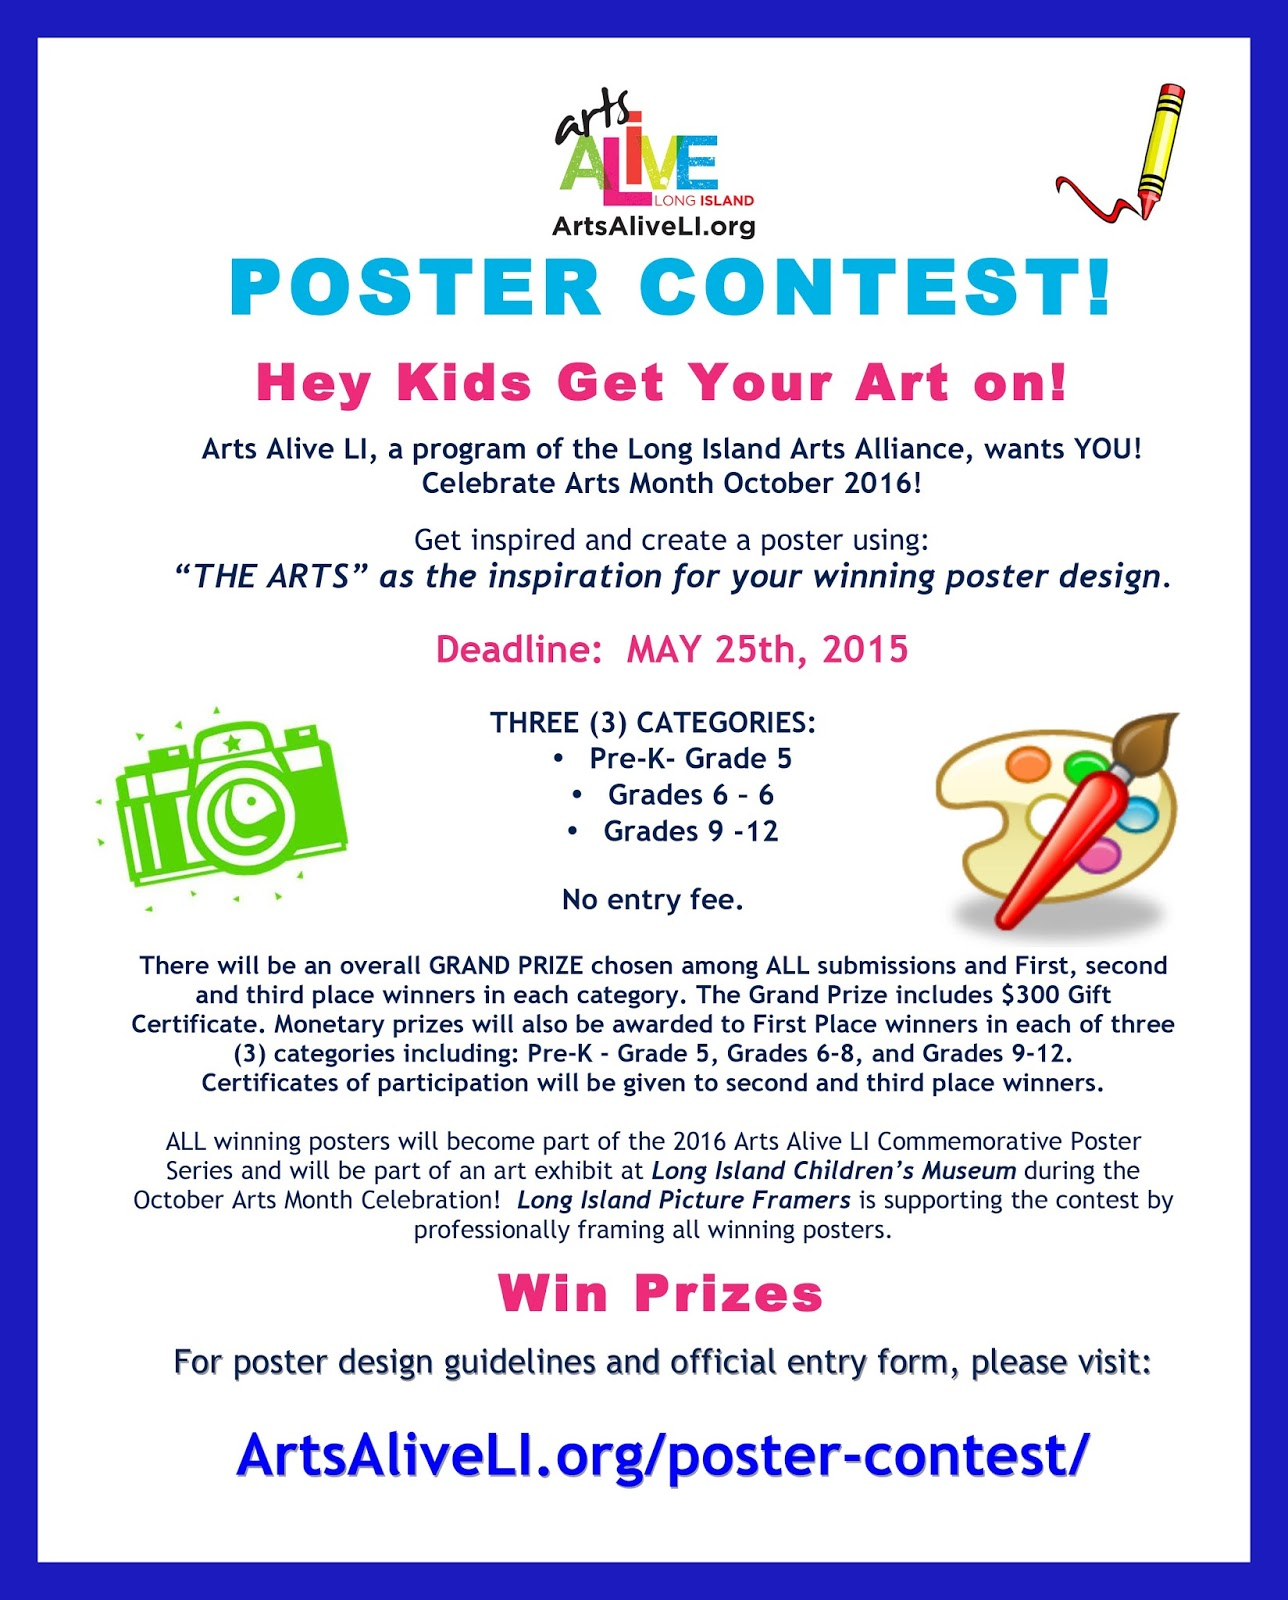 Art Room 161: Studio Art: Arts Alive Poster Contest